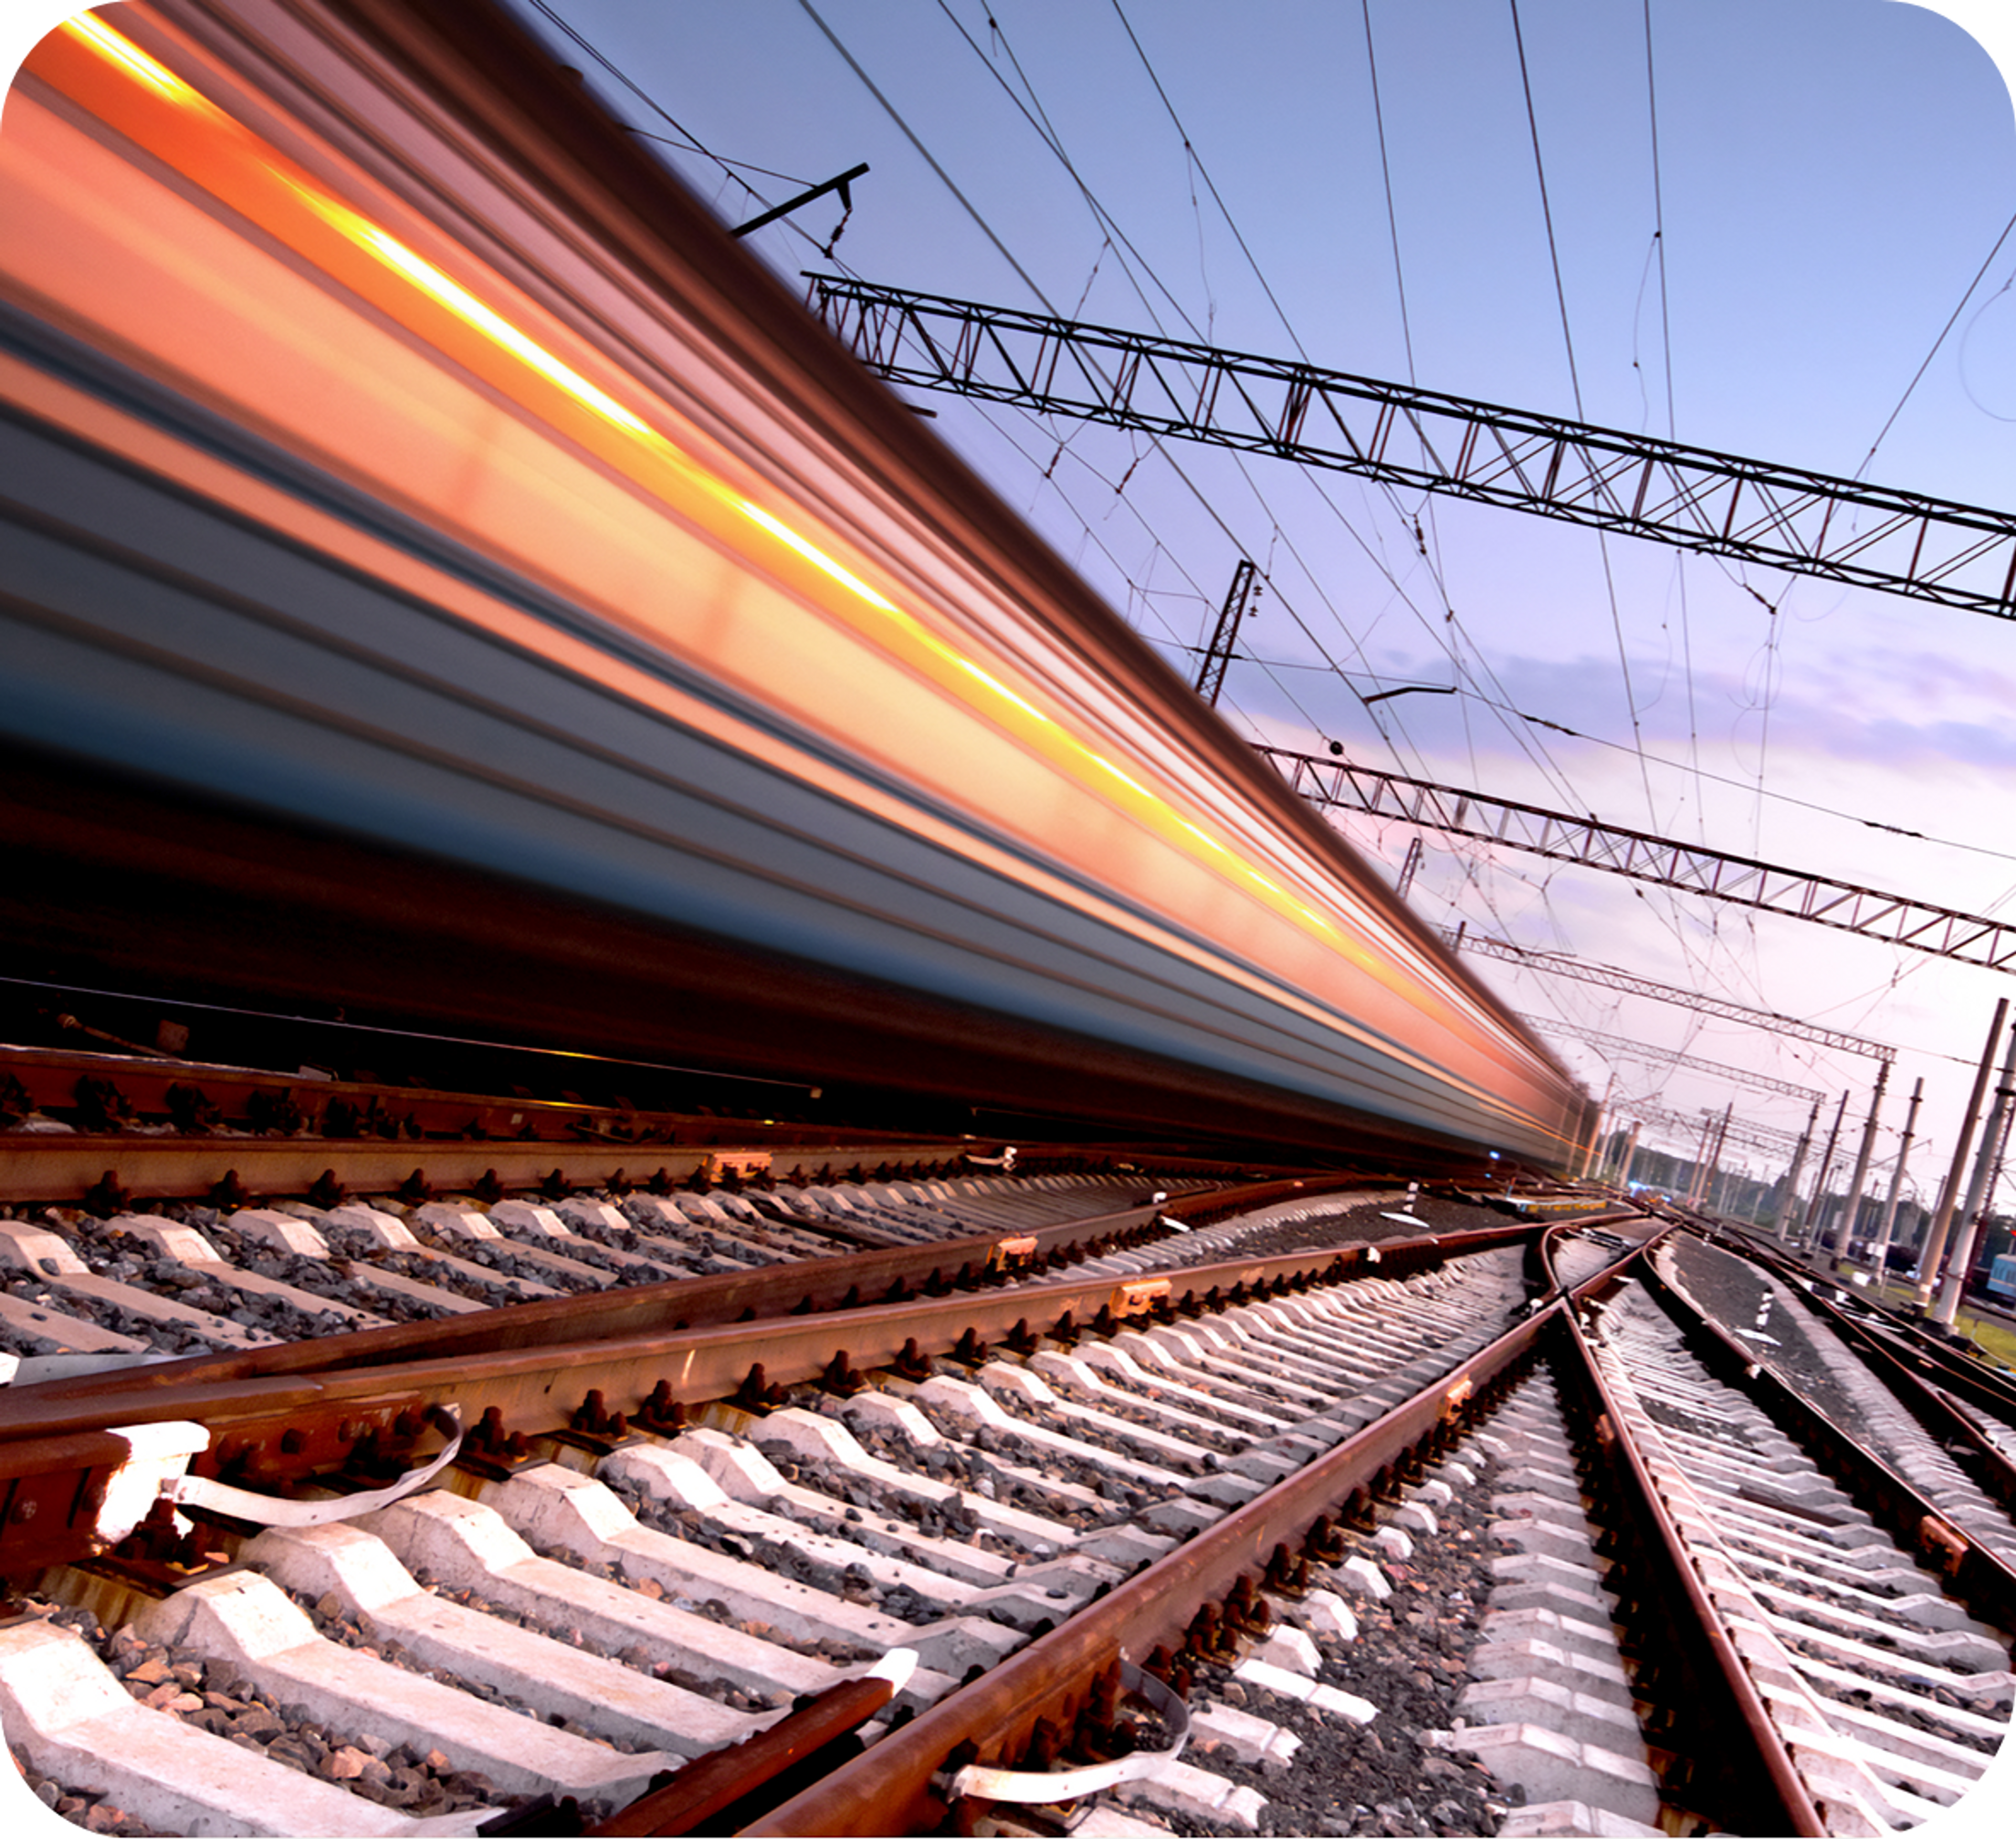 Picture of a fast moving train on train tracks